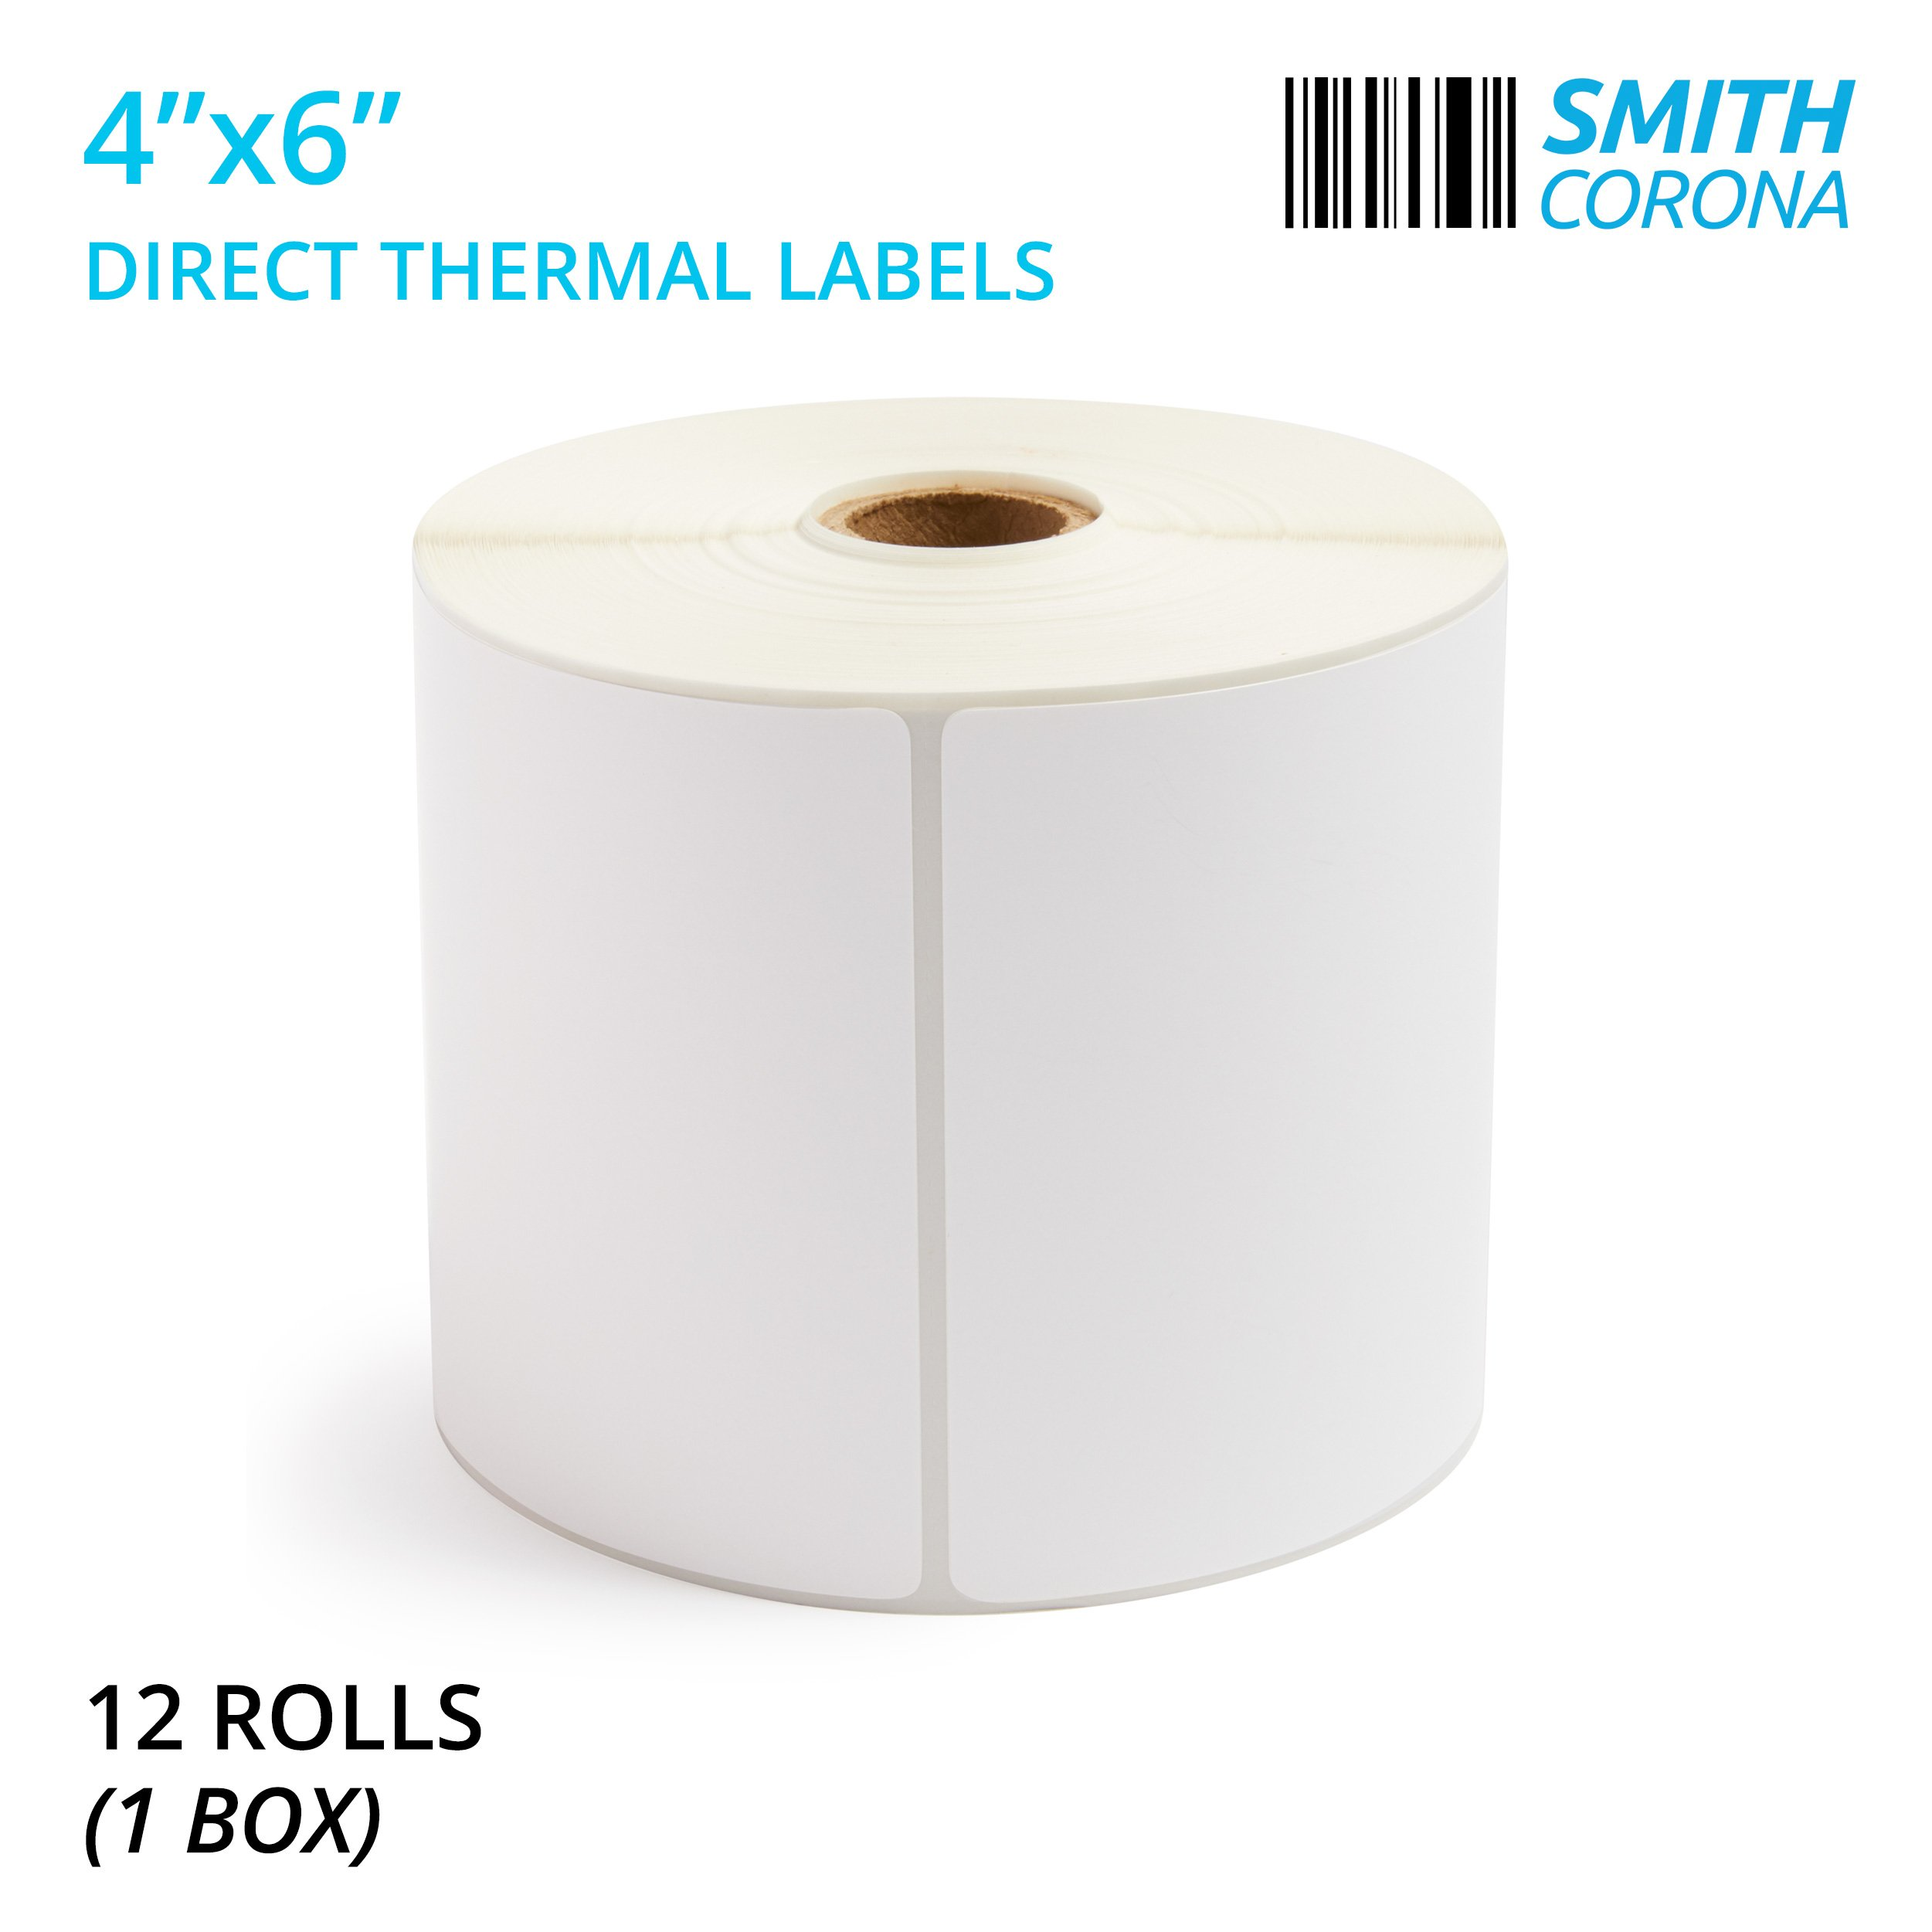 Smith Corona - 4'' x 6'' Direct Thermal Labels, 475 Labels per Roll, 12 Rolls, Made in The USA, 5700 Labels Total, for 1'' Core Printers (12 Rolls) - Zebra Compatible